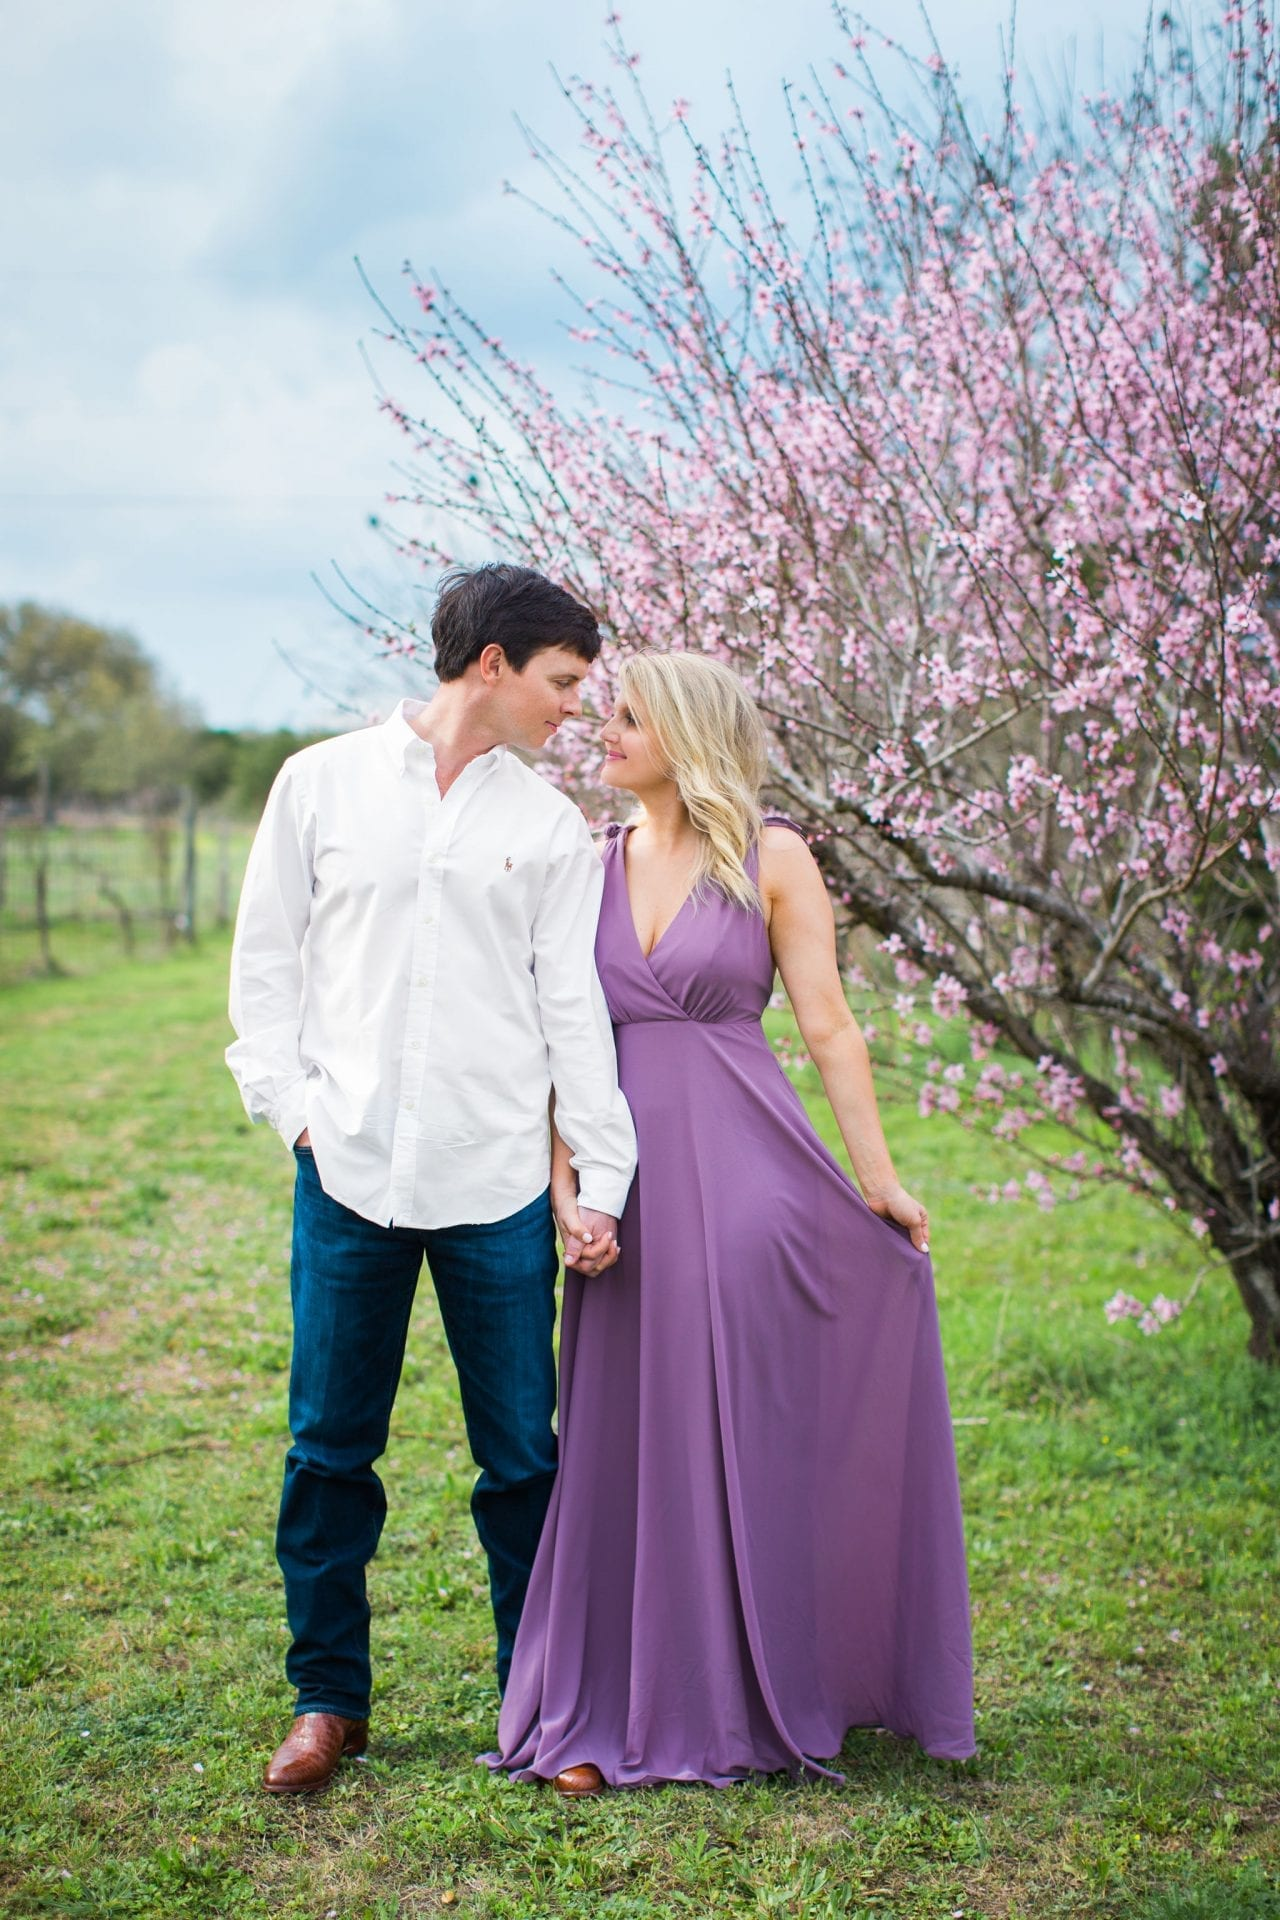 Michele Engagement session at Oak Valley Vineyards leaning in